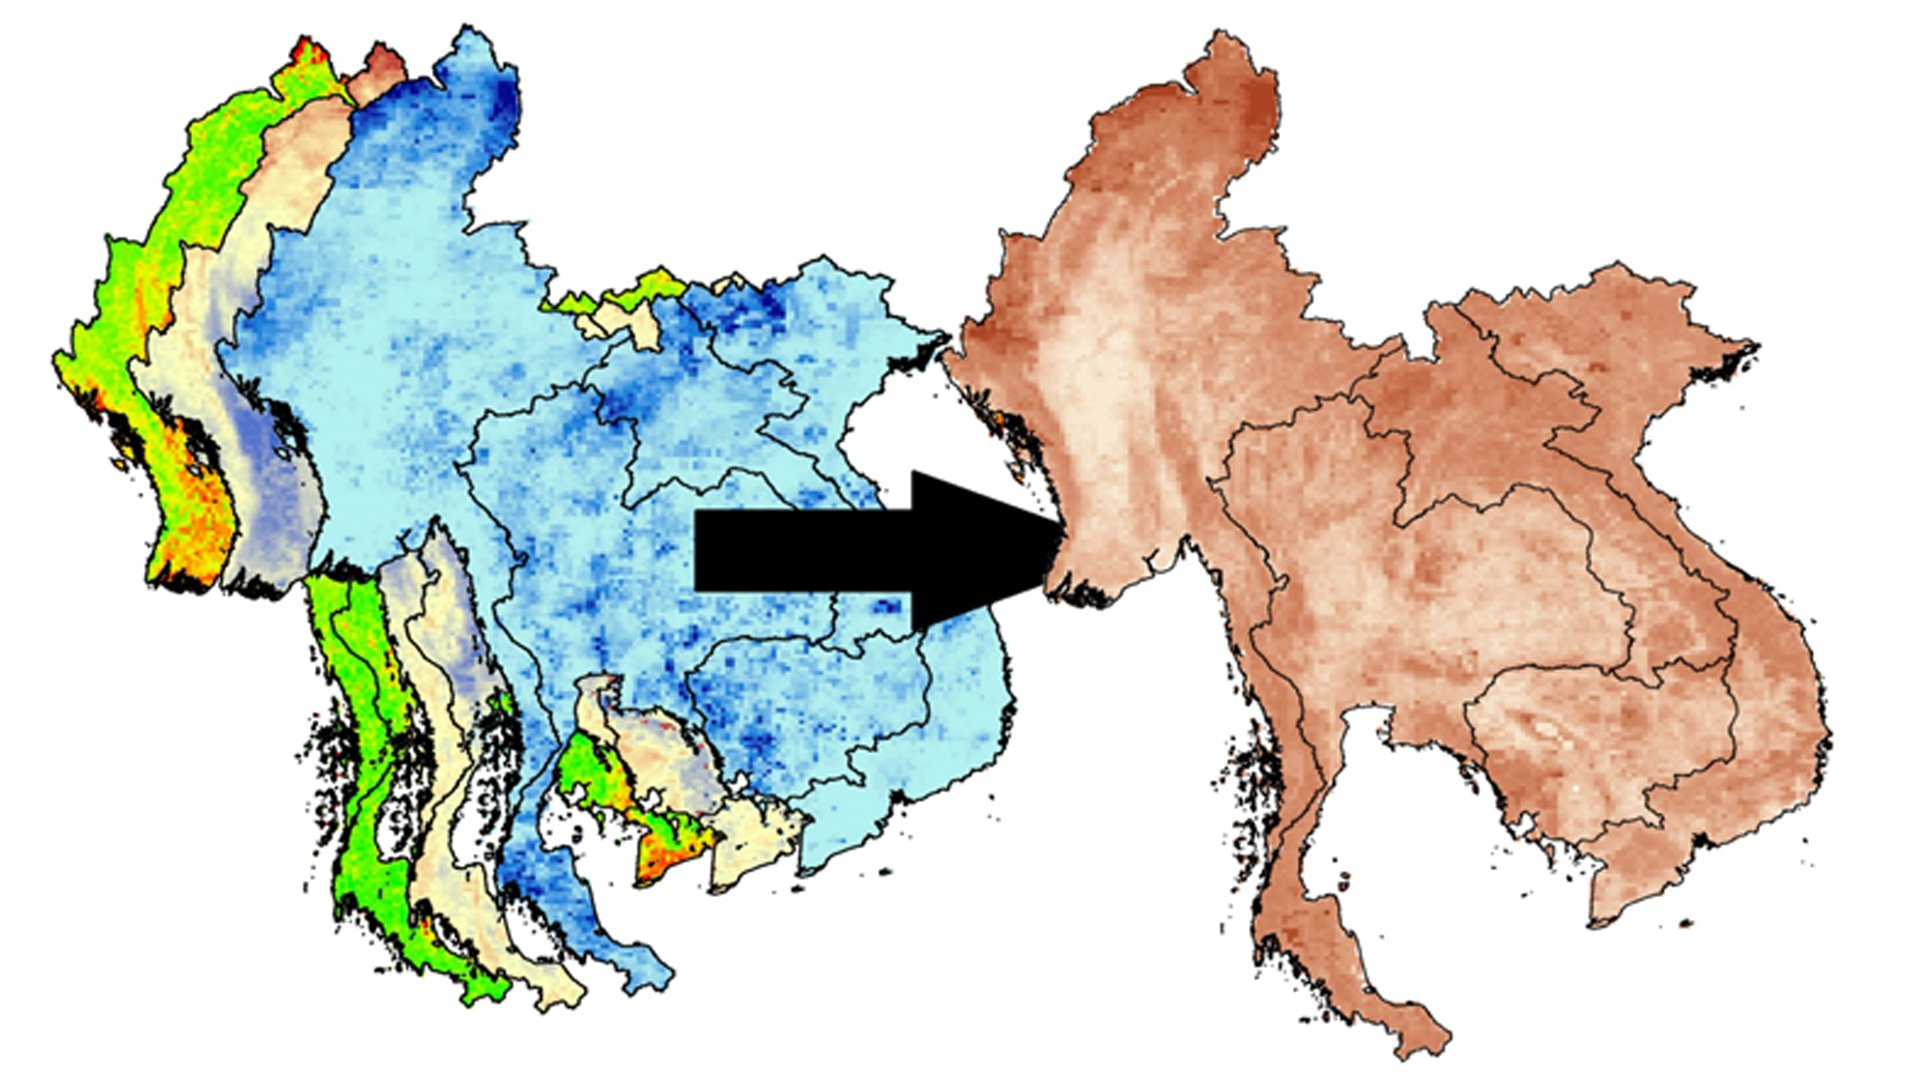 A visualization of the NASA Earth Observation data used in the Mekong River Basin Agriculture DEVELOP project.